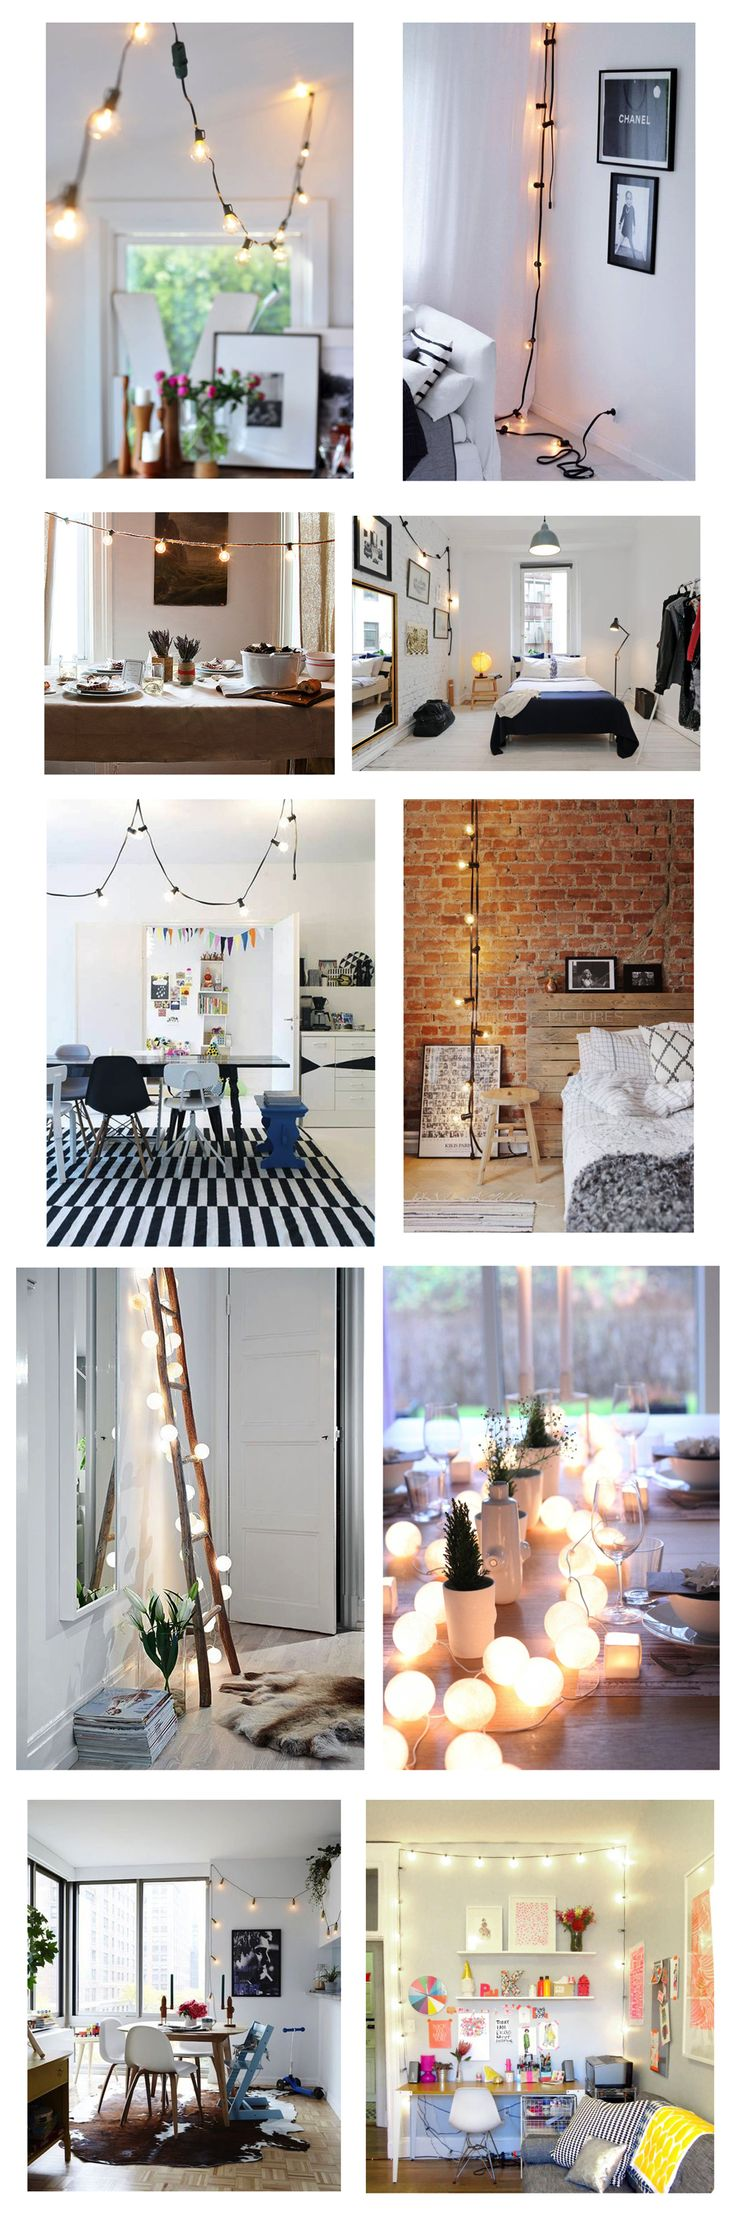 The surprisingly chic look of outdoor hanging bulb lights; a.k.a., globe lights or string lights, brought indoors.